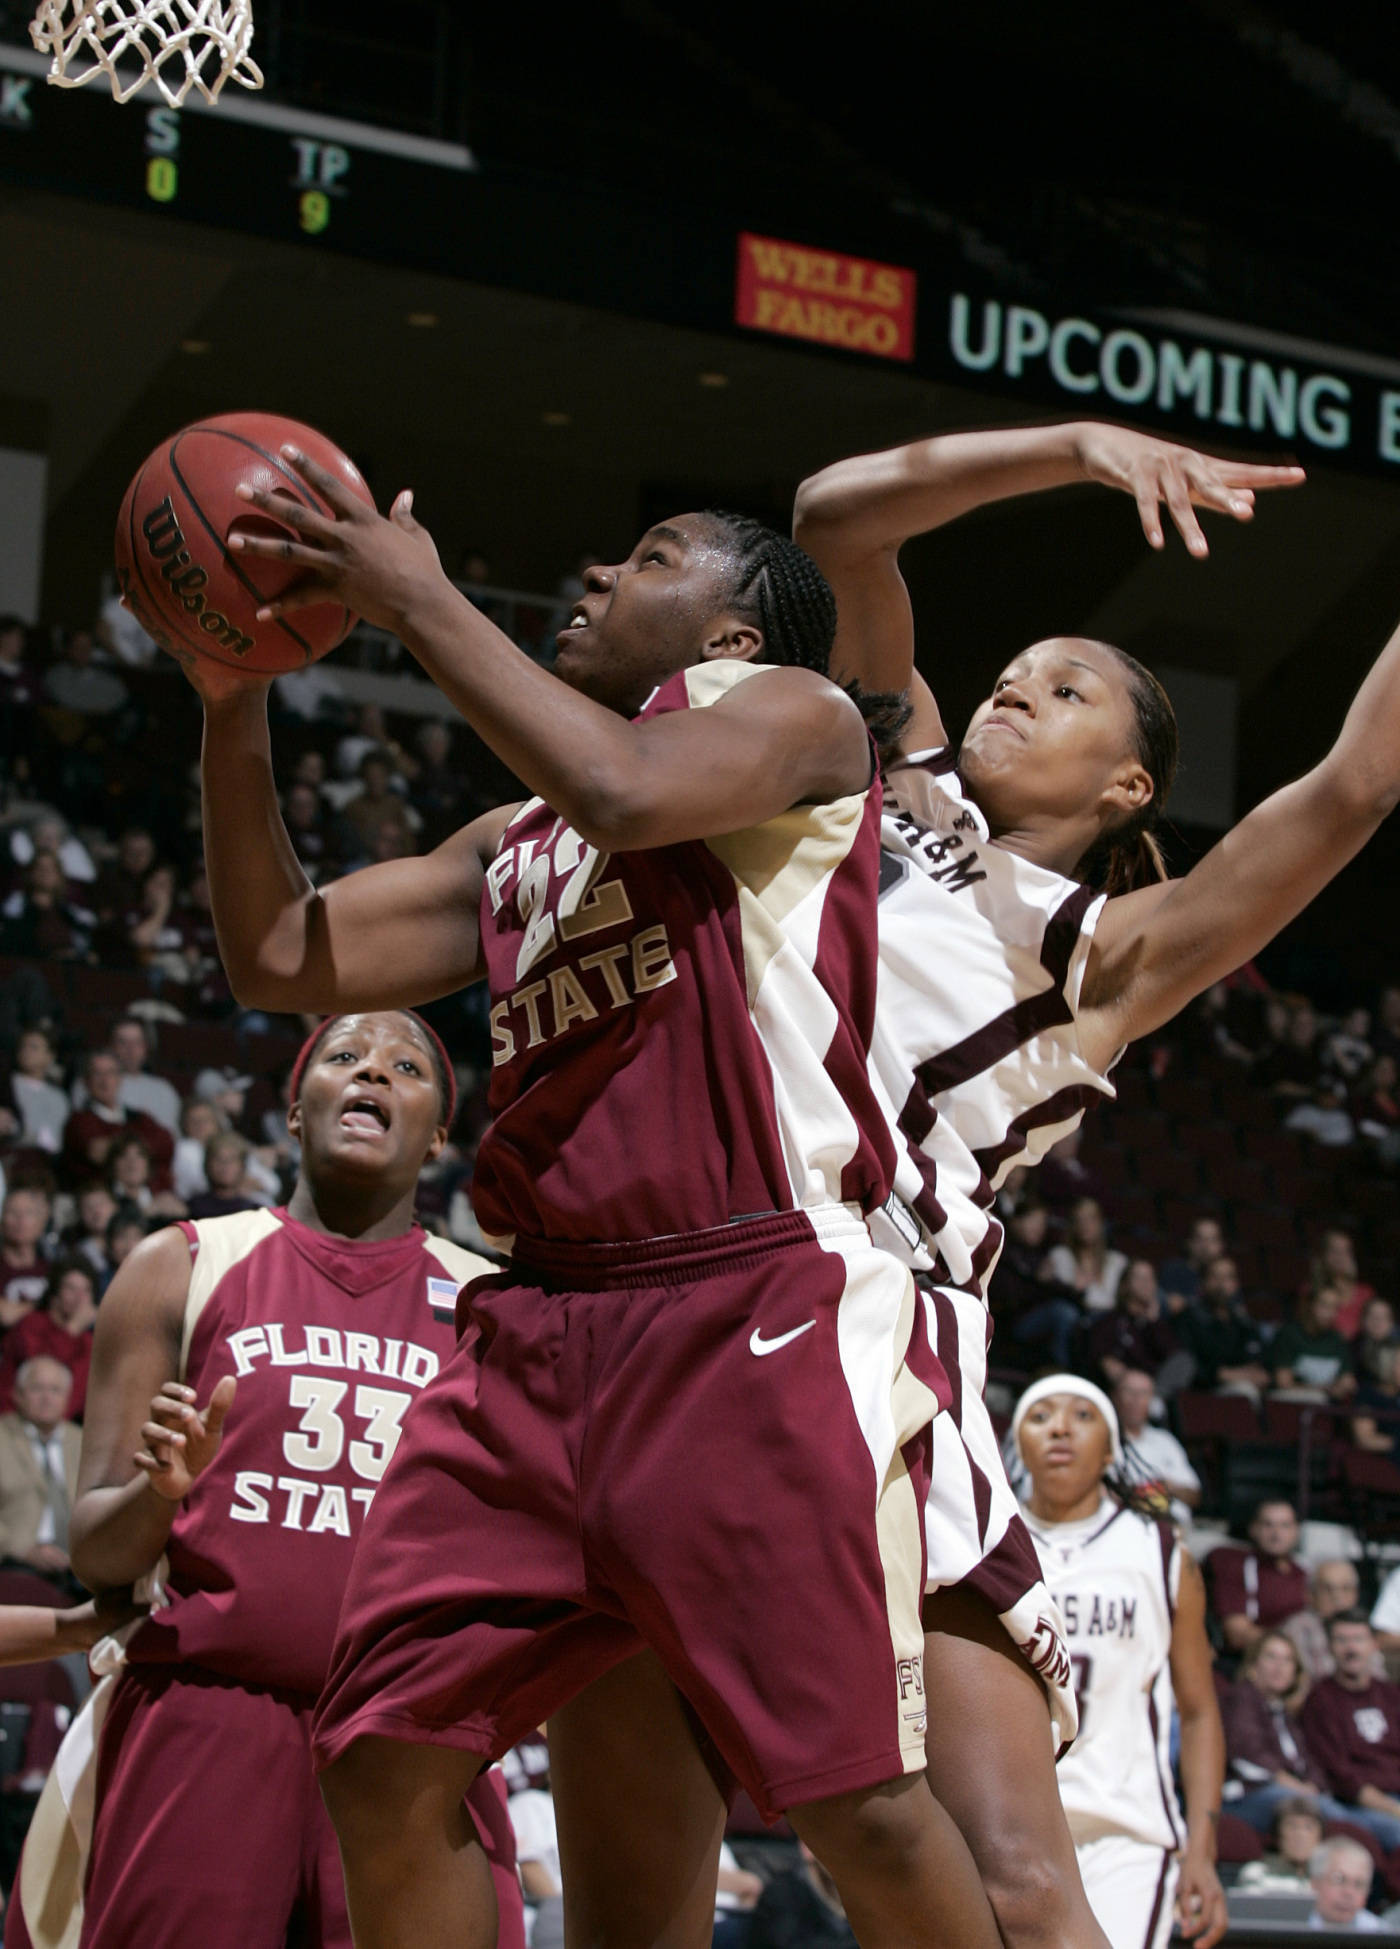 Florida State's Shante Williams goes for the basket while guarded by Texas A&M's La Toya Micheaux during the second half of their basketball game Thursday, Dec. 6, 2007 at Reed Arena in College Station, Texas. Texas A&M defeated Florida State 81-67. (AP Photo/Paul Zoeller)